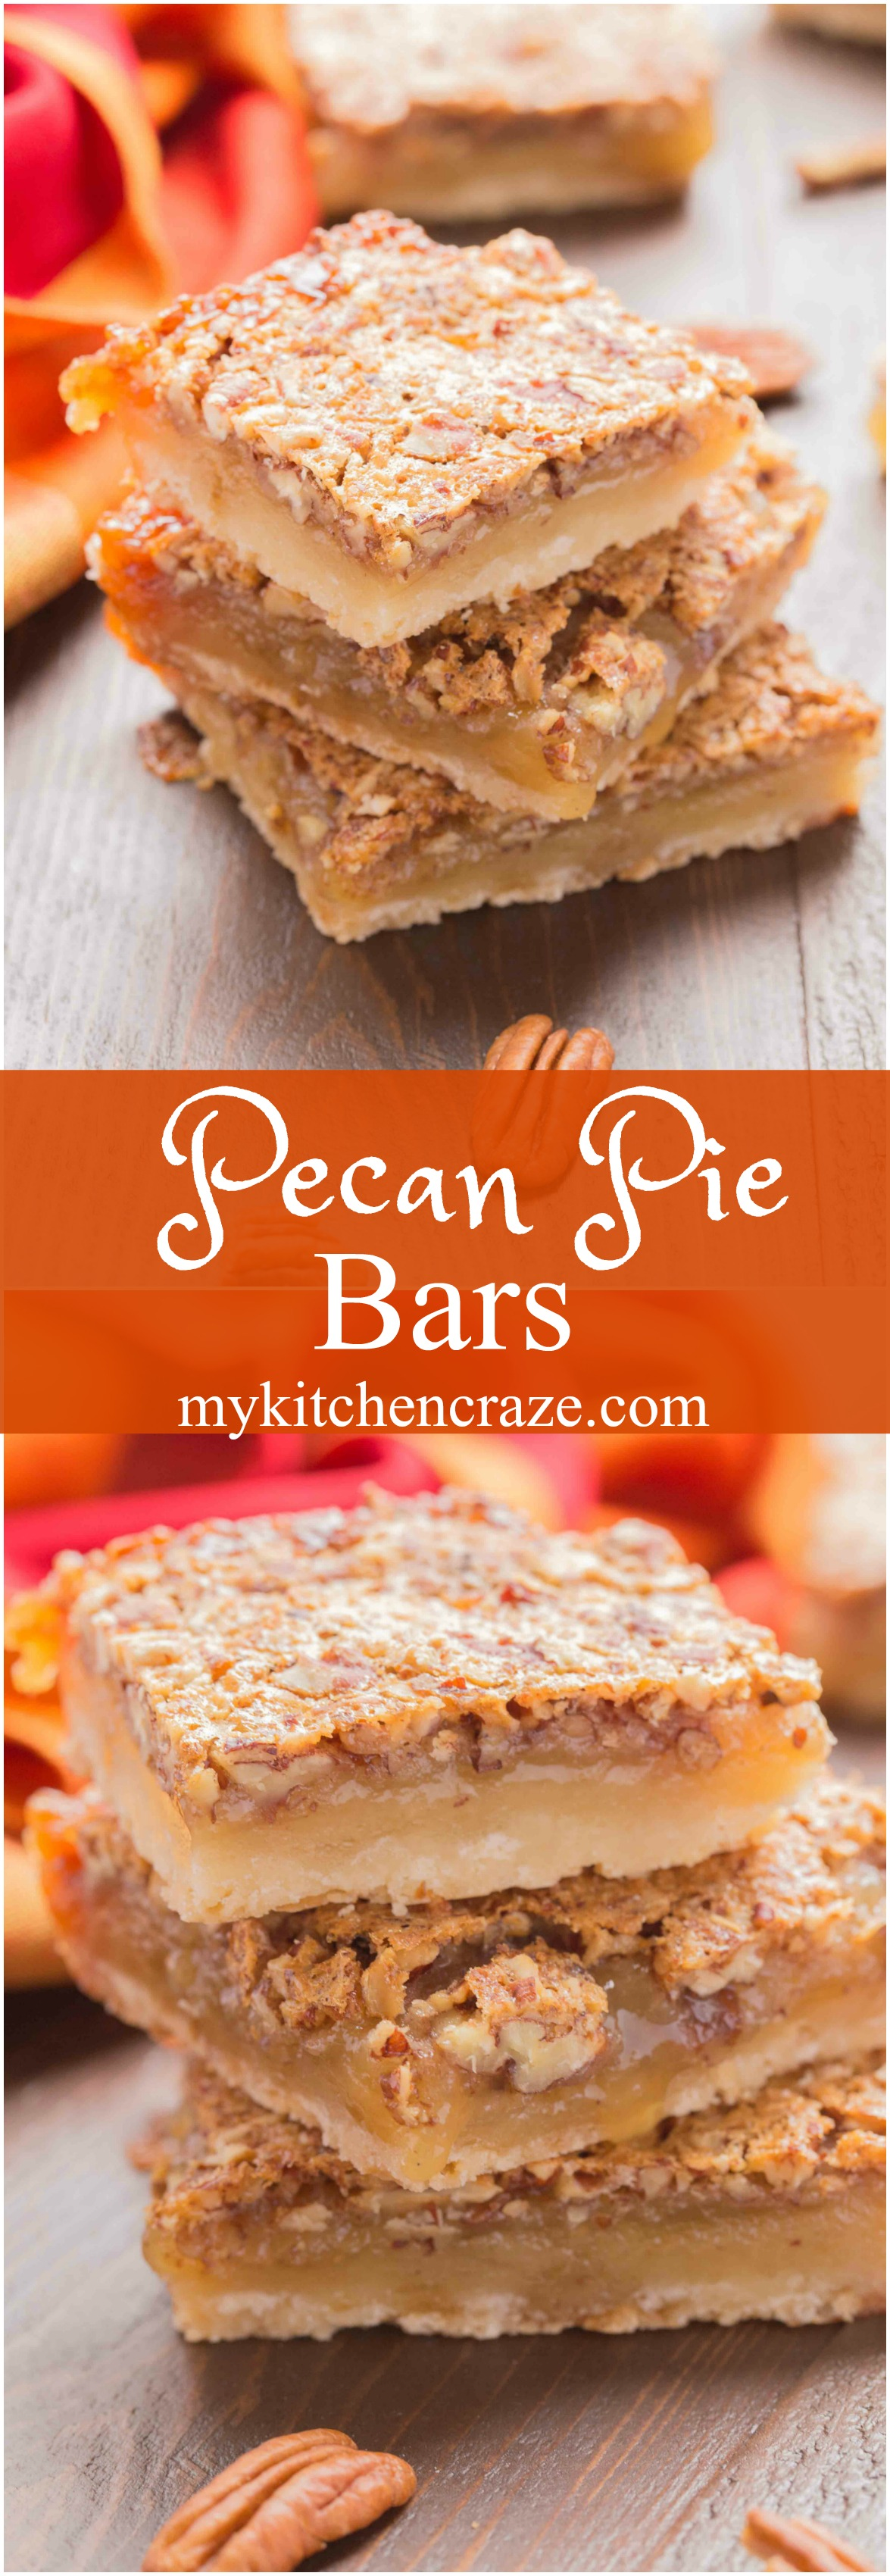 These Pecan Pie Bars are easier to make and serve rather than traditional pecan pie. Perfect for holidays or an any time treat!